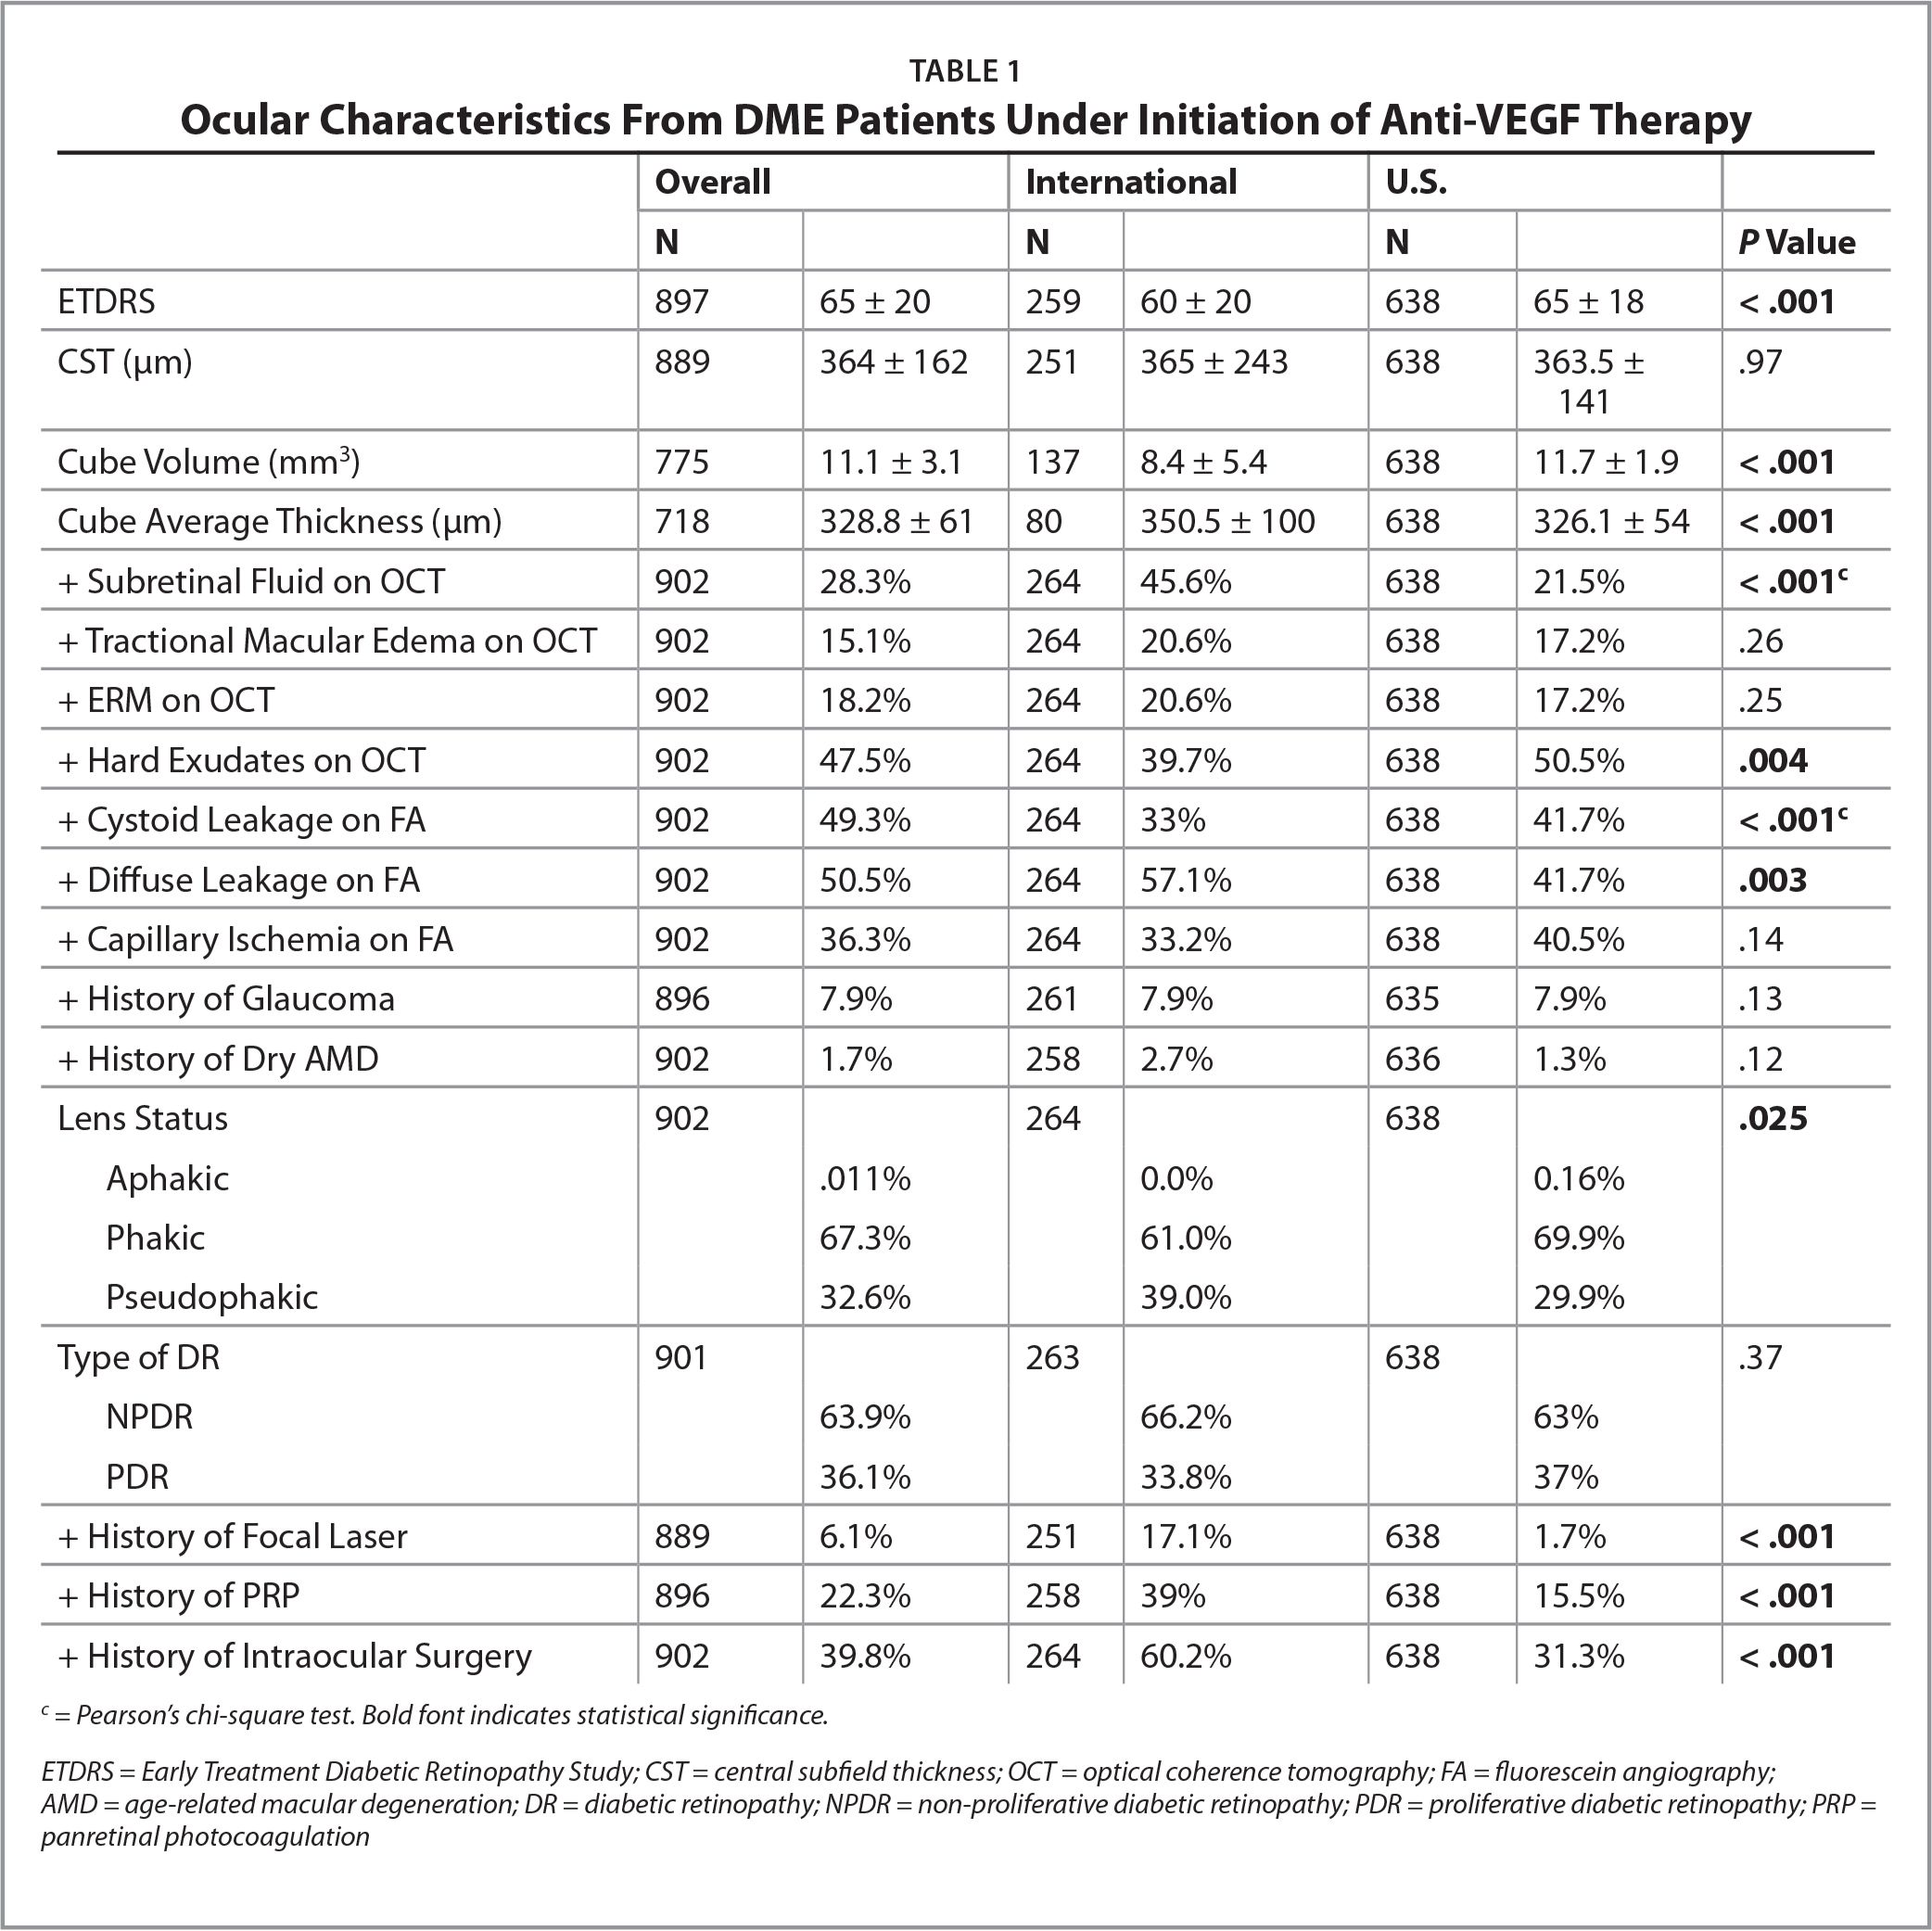 Ocular Characteristics From DME Patients Under Initiation of Anti-VEGF Therapy